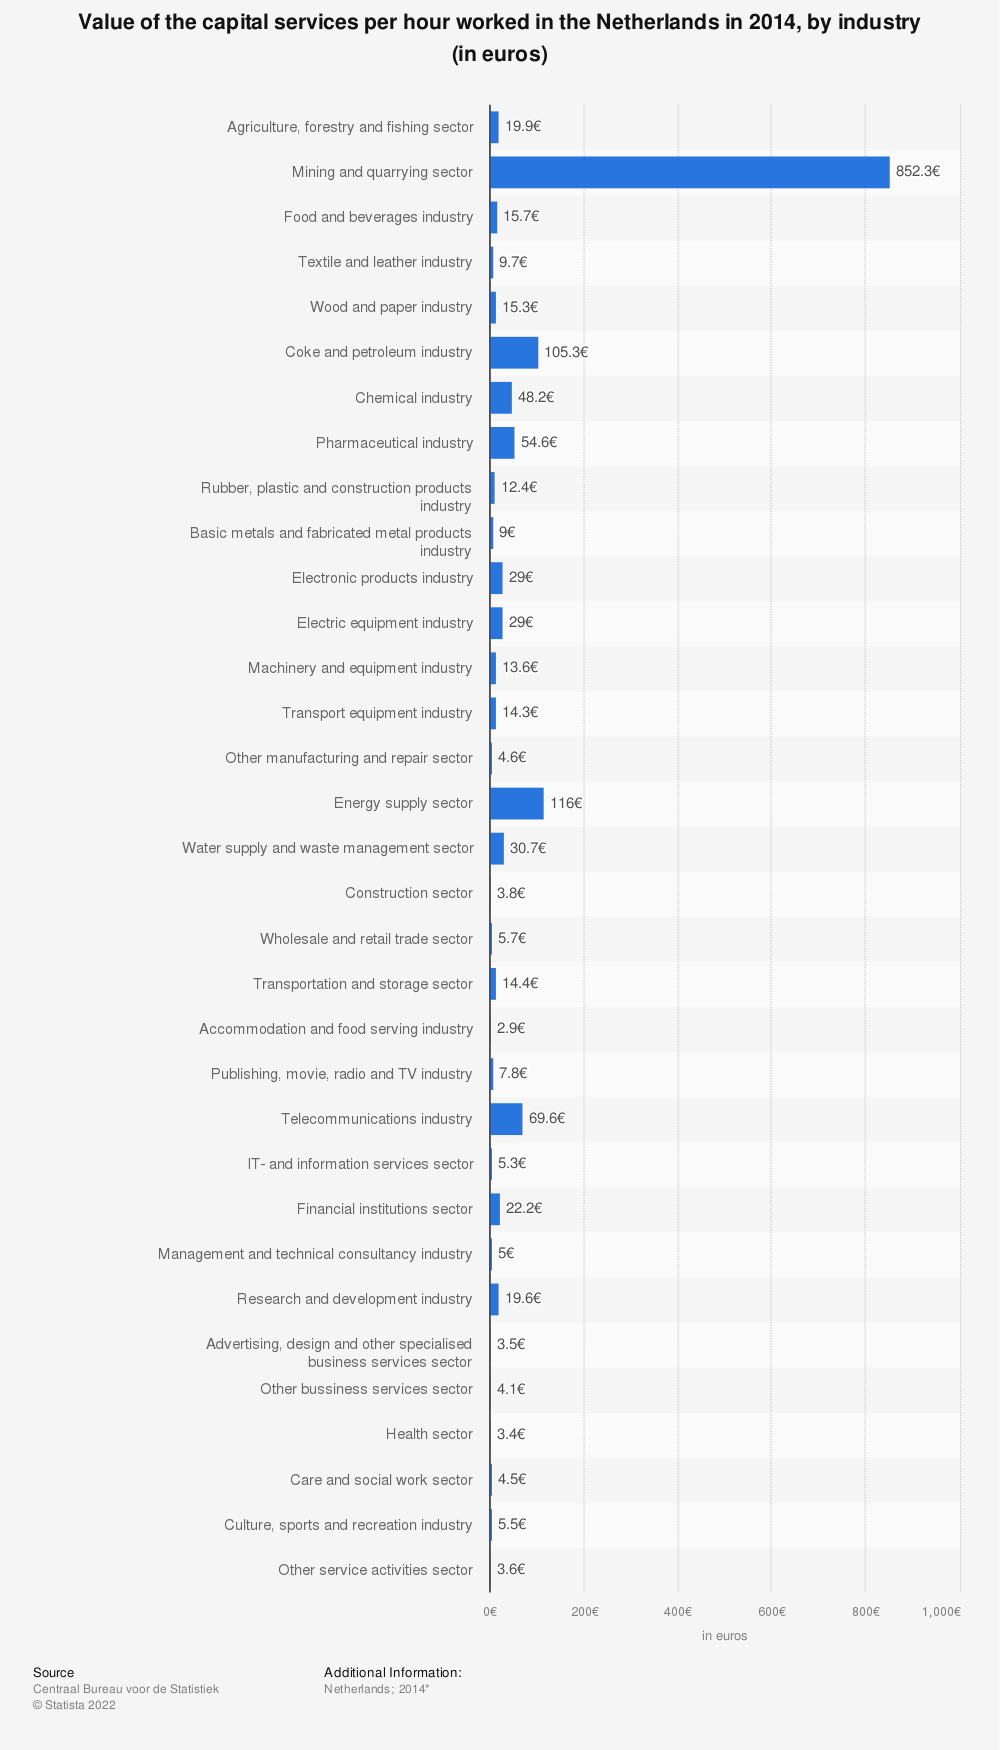 Statistic: Value of the capital services per hour worked in the Netherlands in 2014, by industry (in euros) | Statista